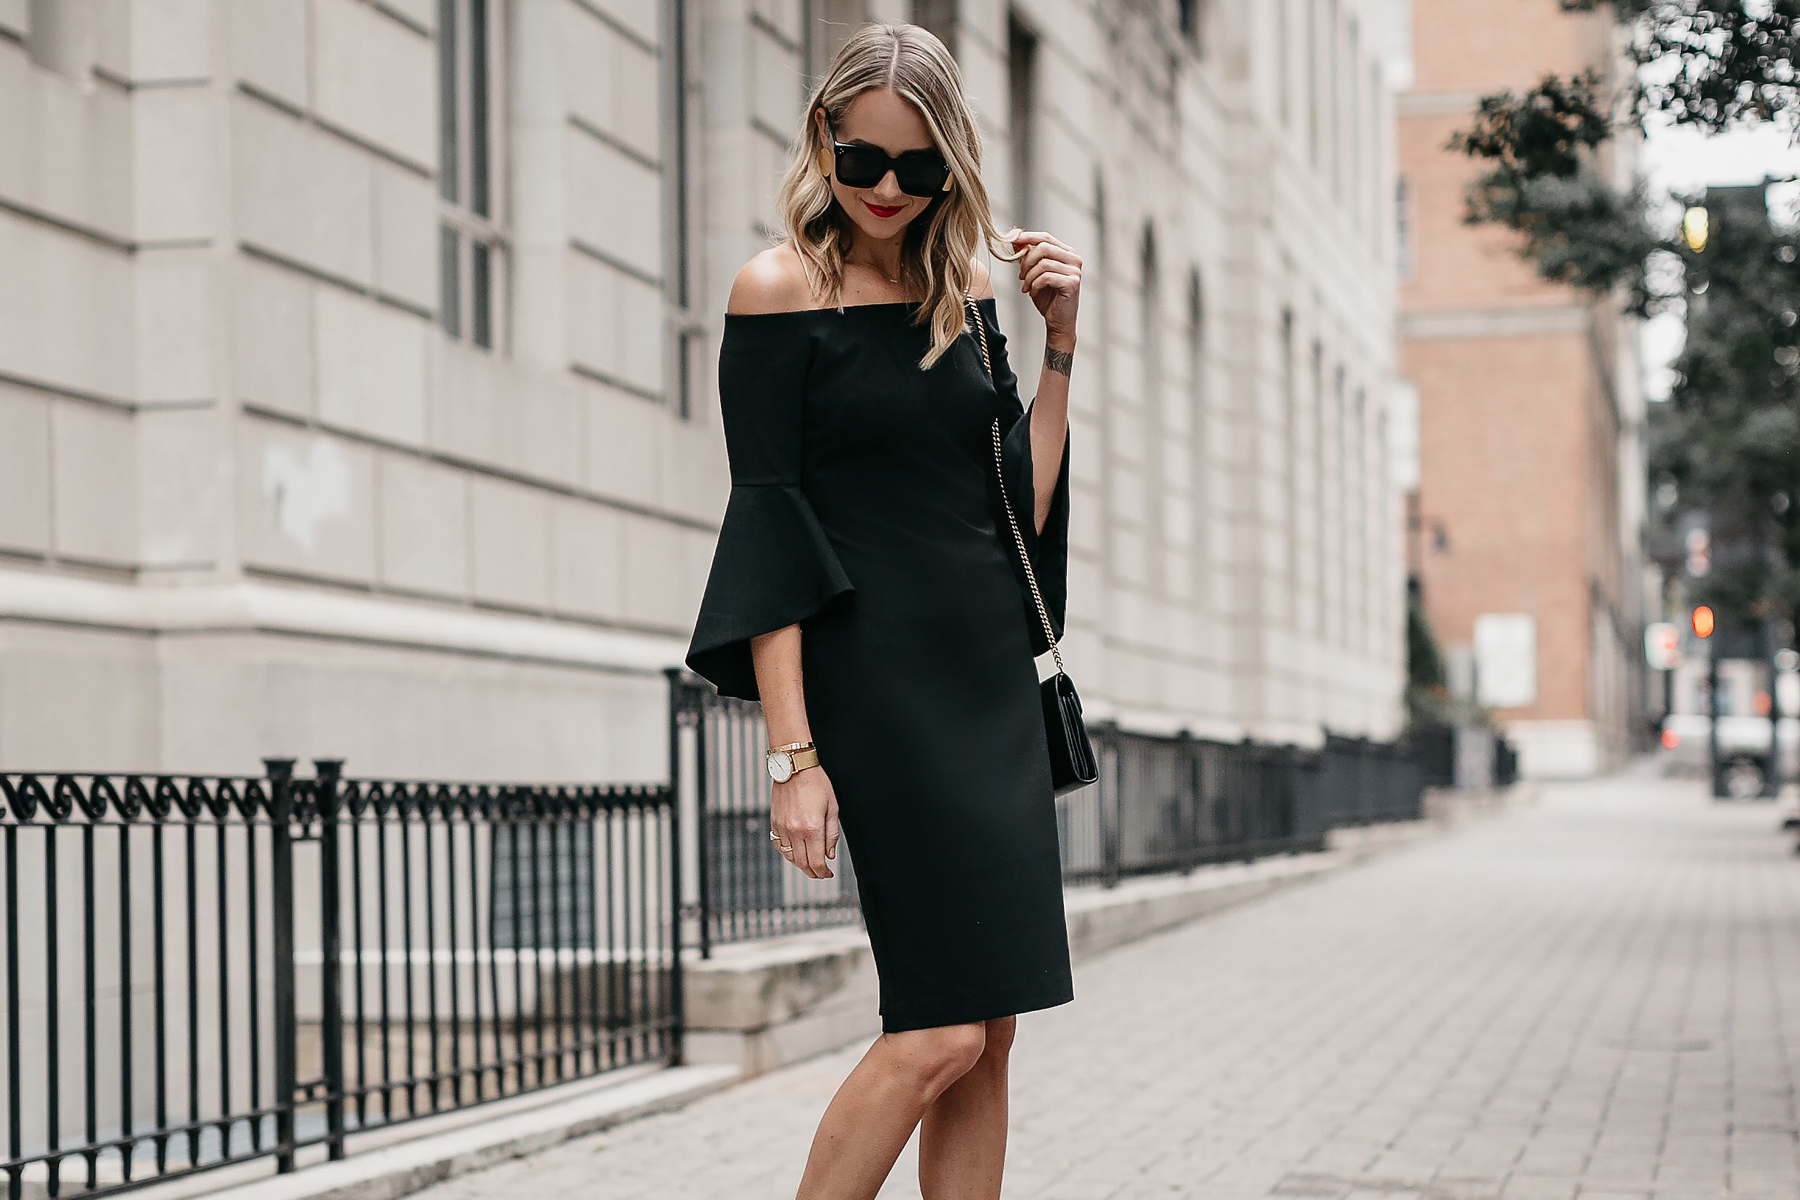 Blonde Woman Wearing Off-the-Shoulder Black Holiday Dress Fashion Jackson Dallas Blogger Fashion Blogger Street Style